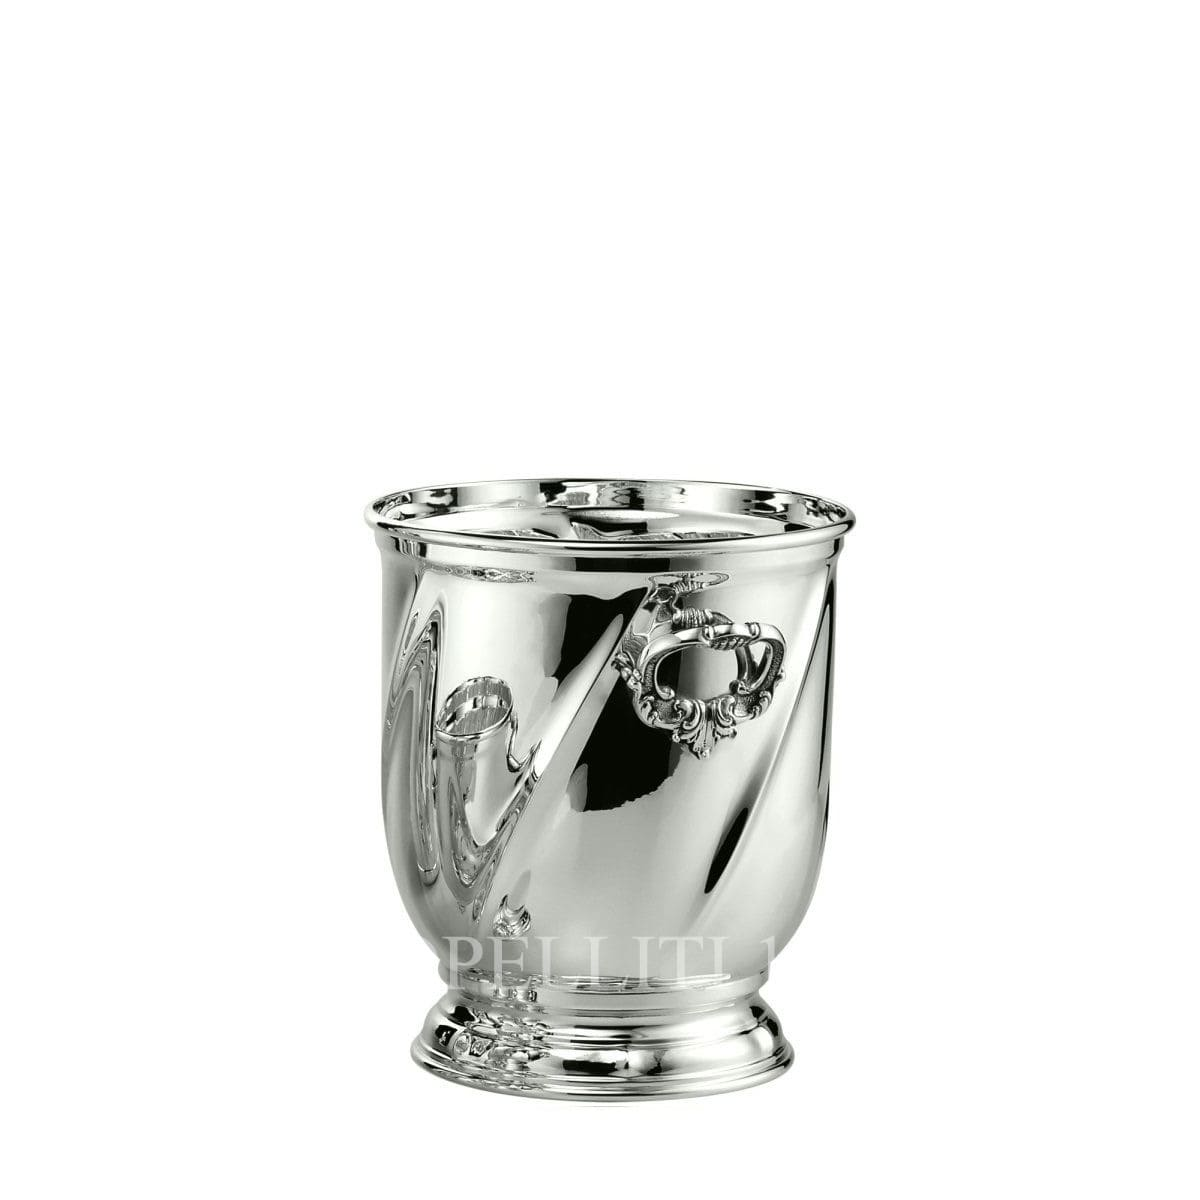 schiavon torsè real 925 sterling silver ice bucket with base